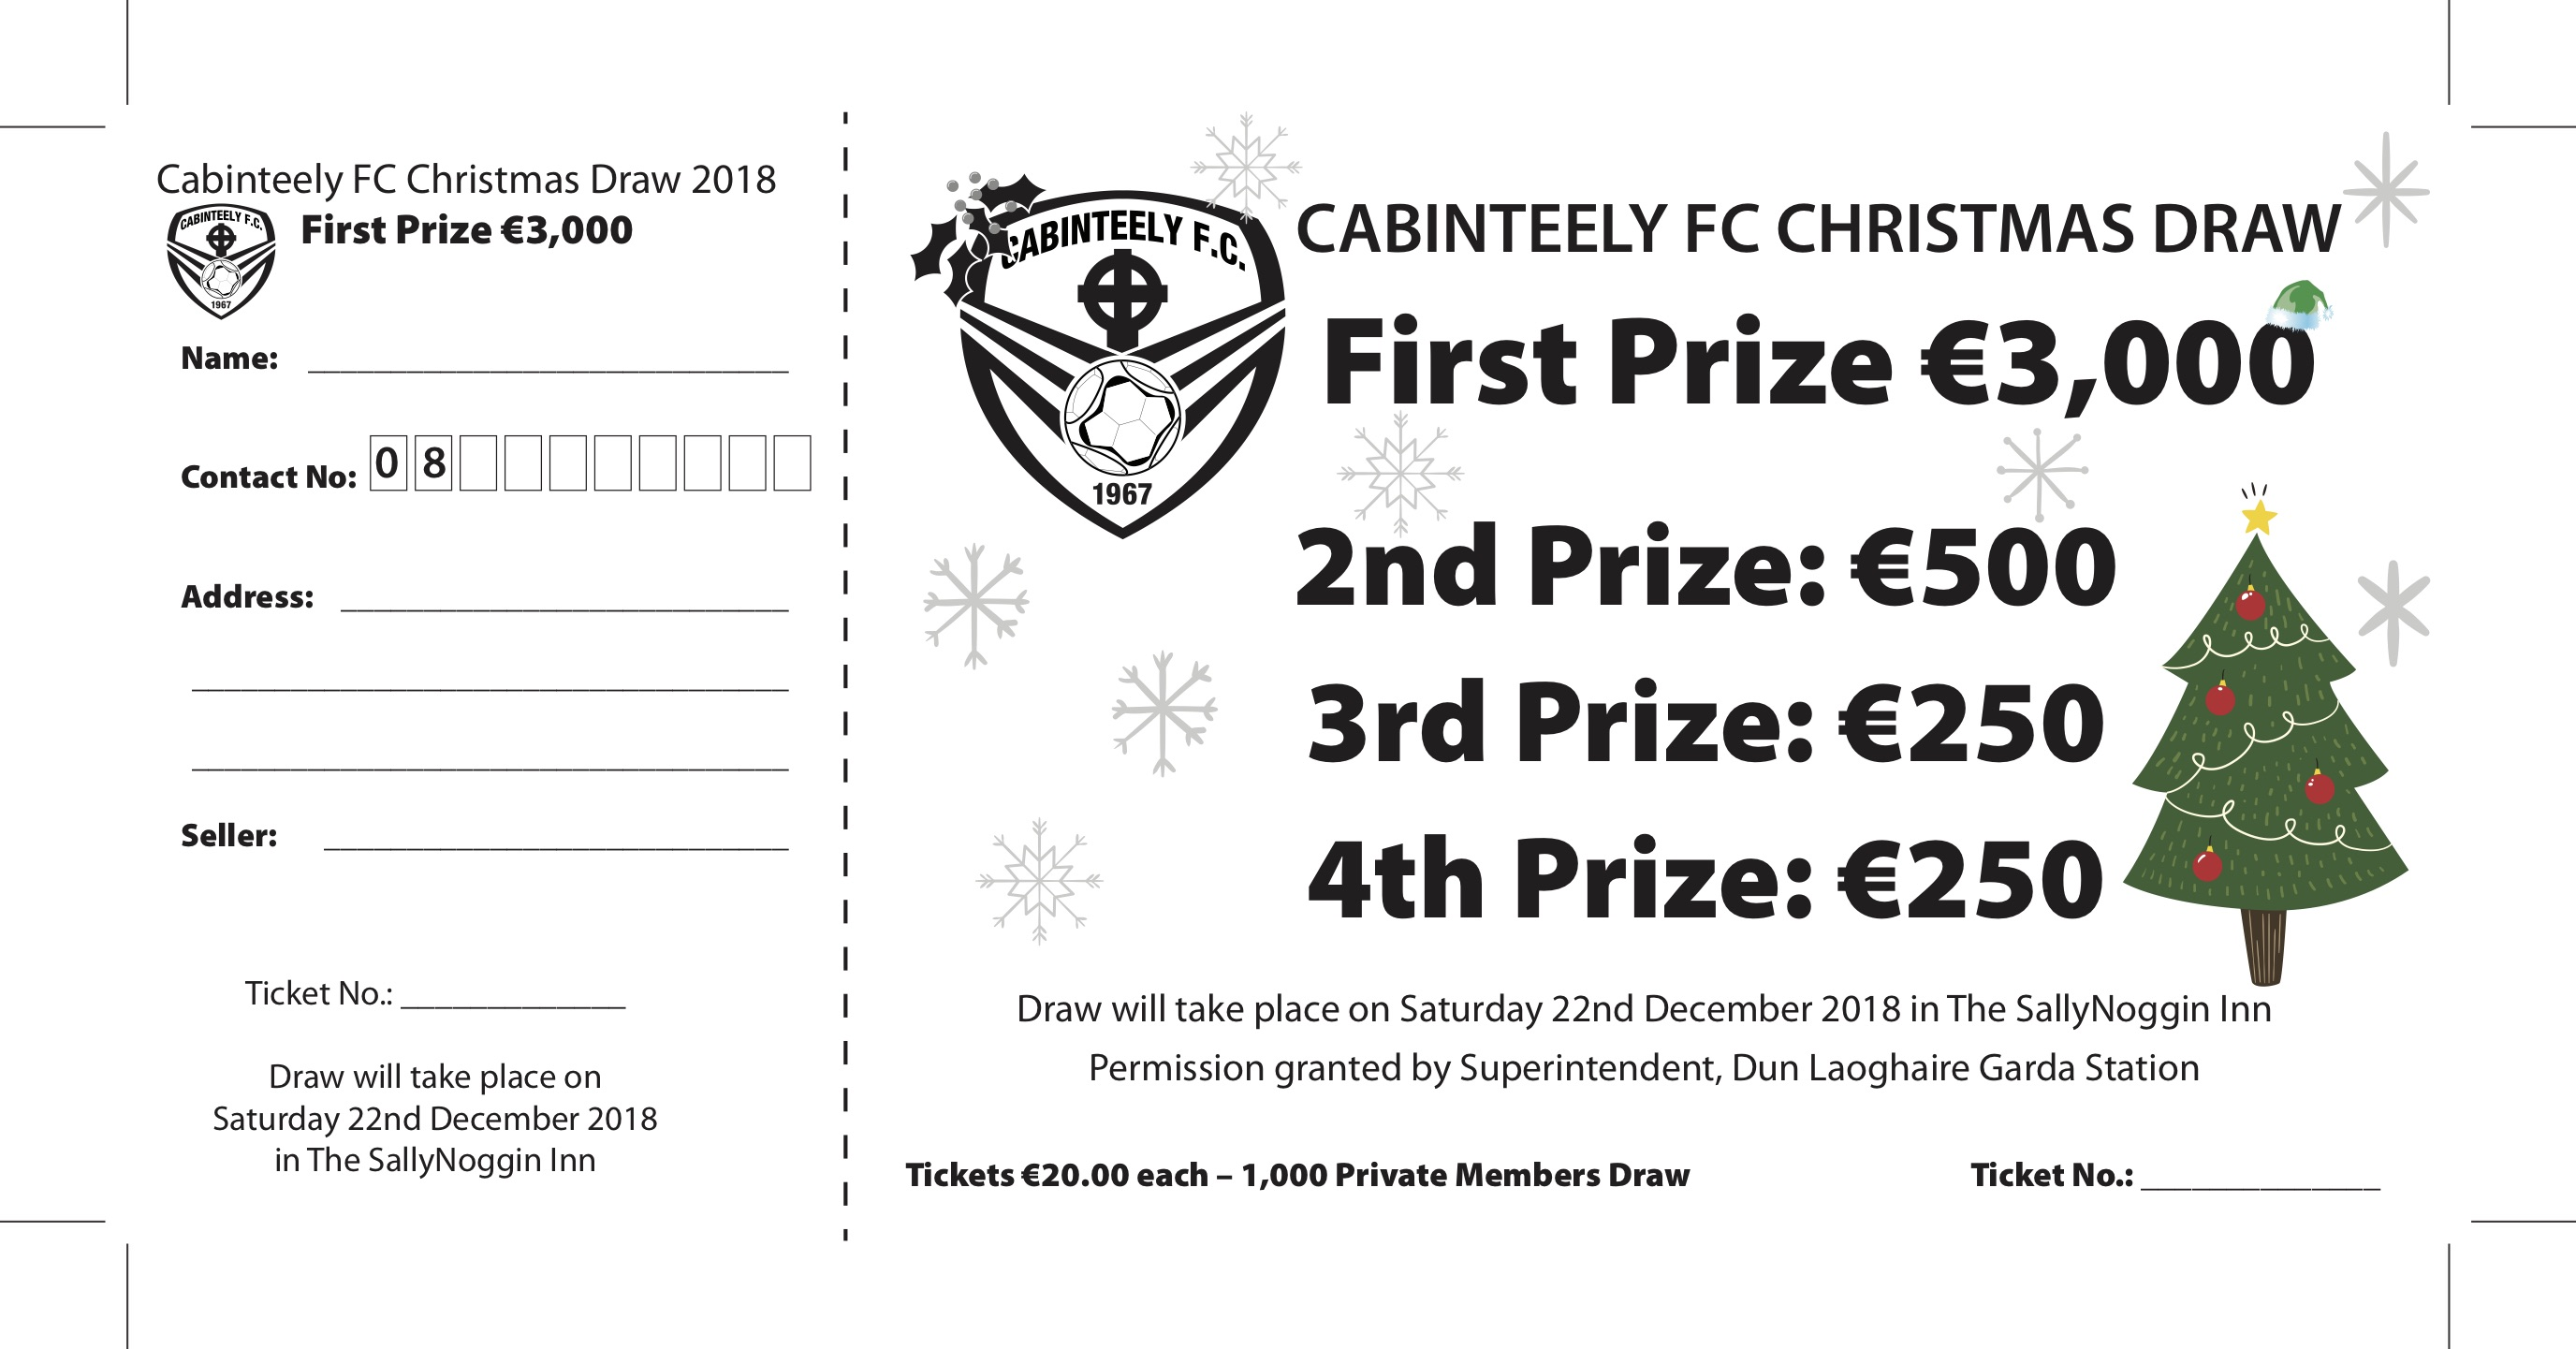 cabinteely-fc-1000-christmas-draw